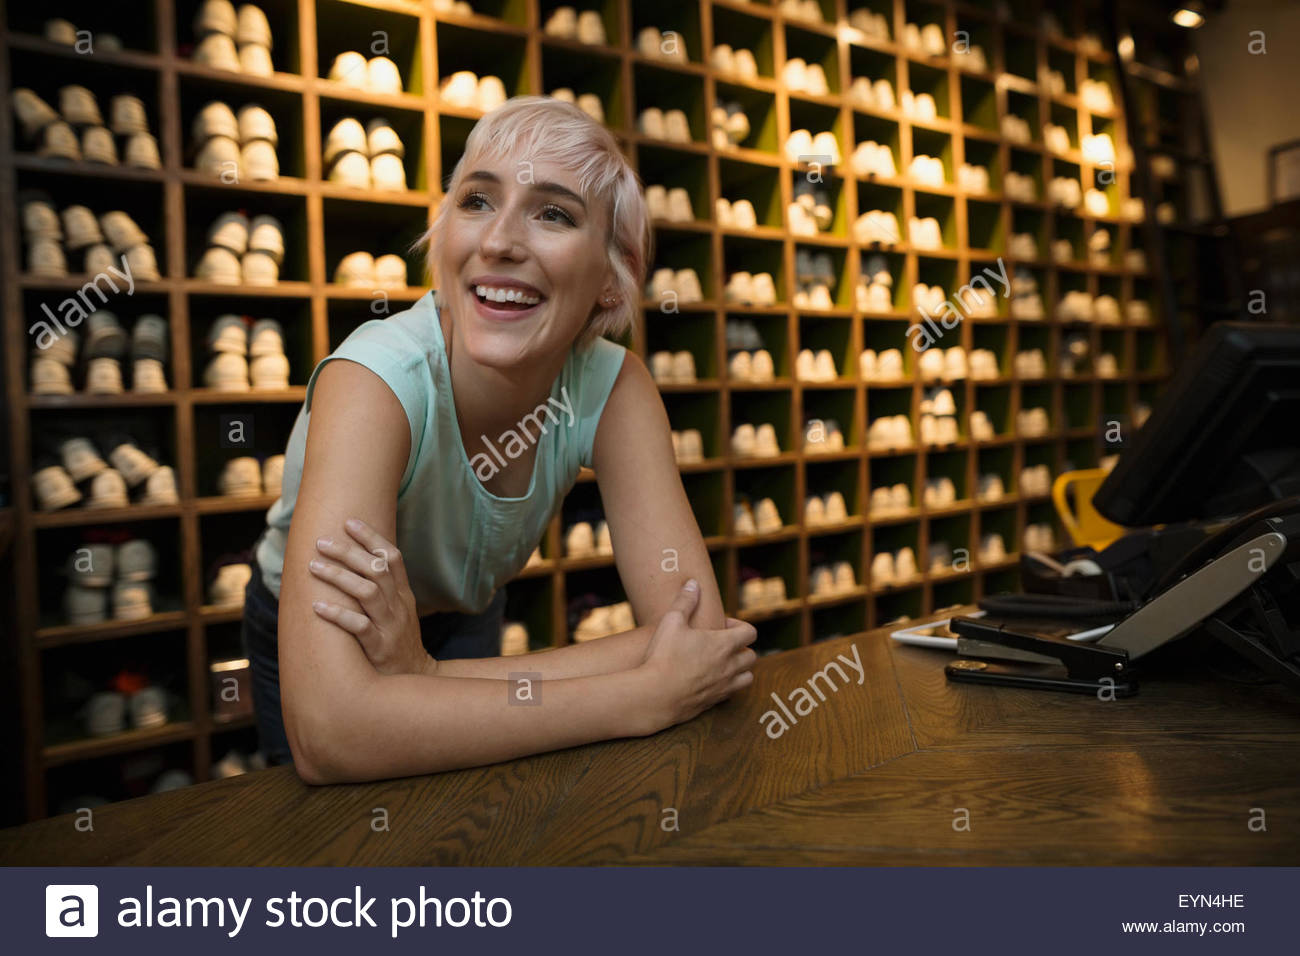 Smiling woman leaning on bowling chaussures Comptoir de location Photo Stock